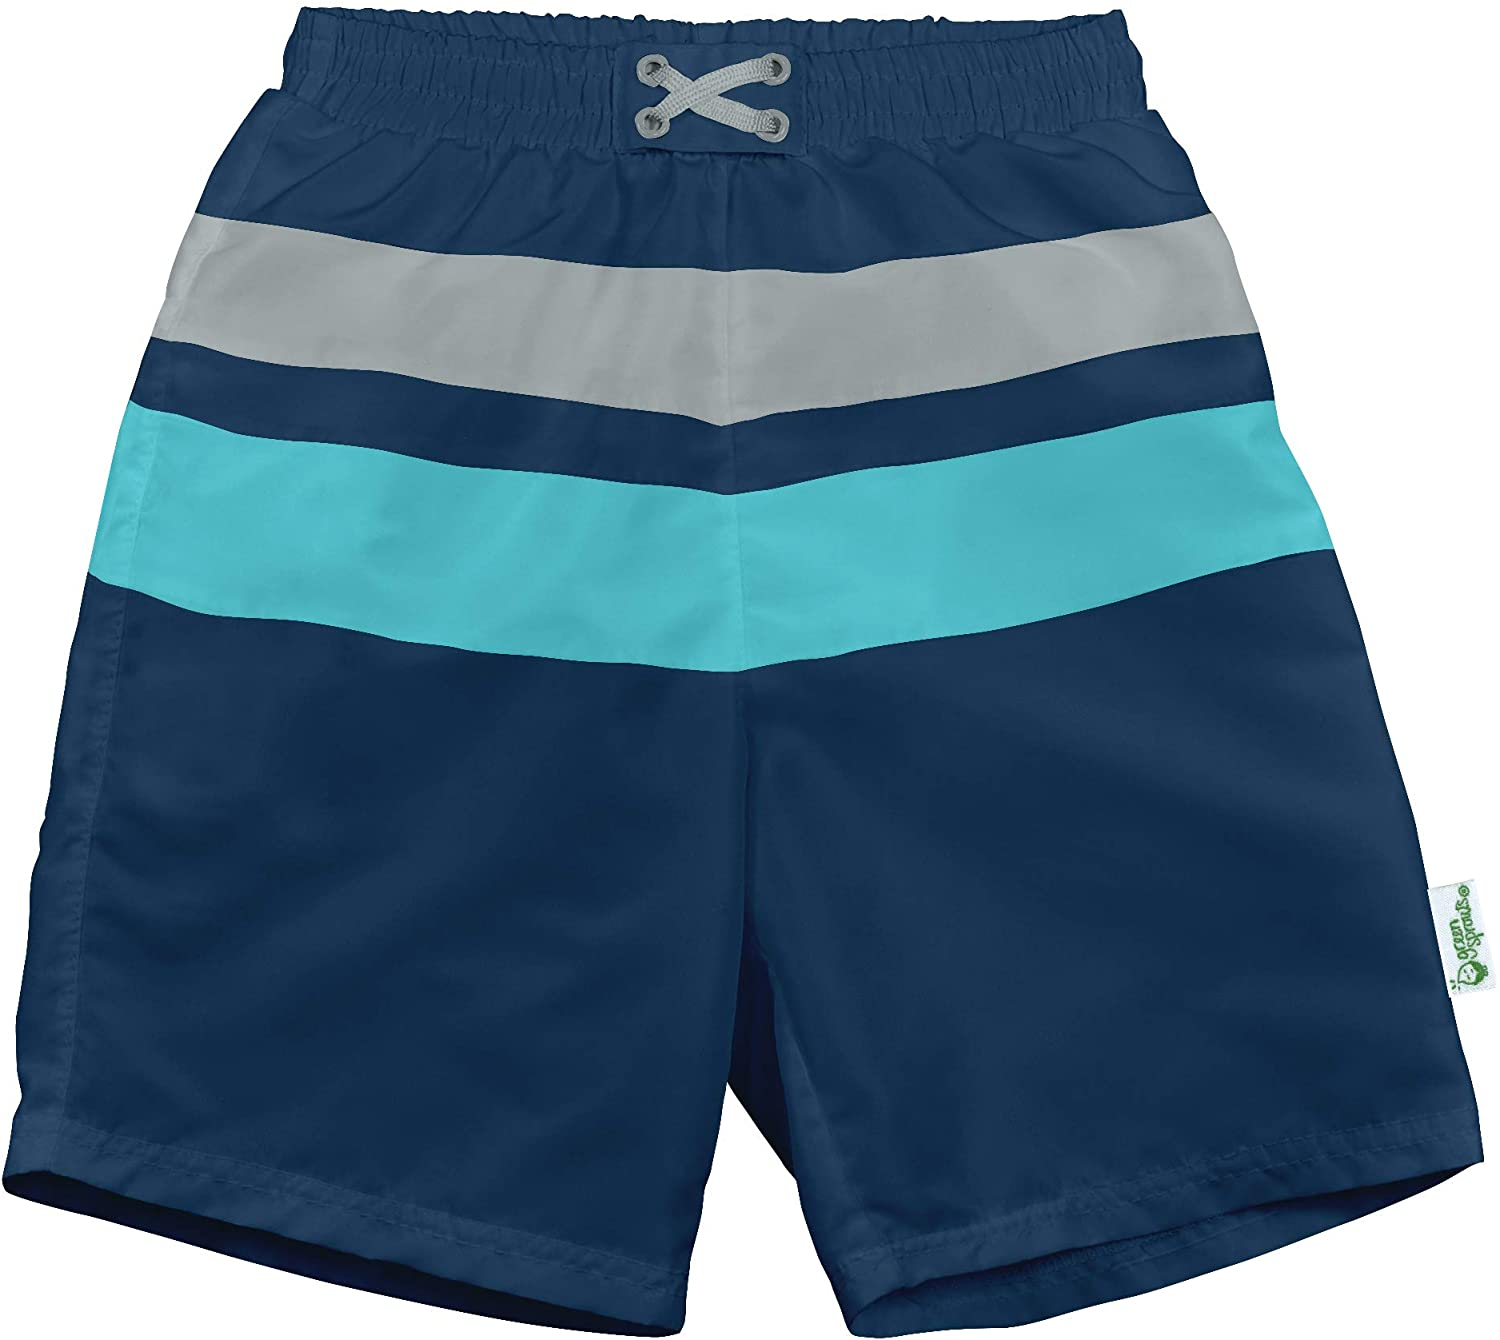 i play by green sprouts baby-boys Trunks with Built-in Reusable Swim Diaper,Navy//Aqua,12mo